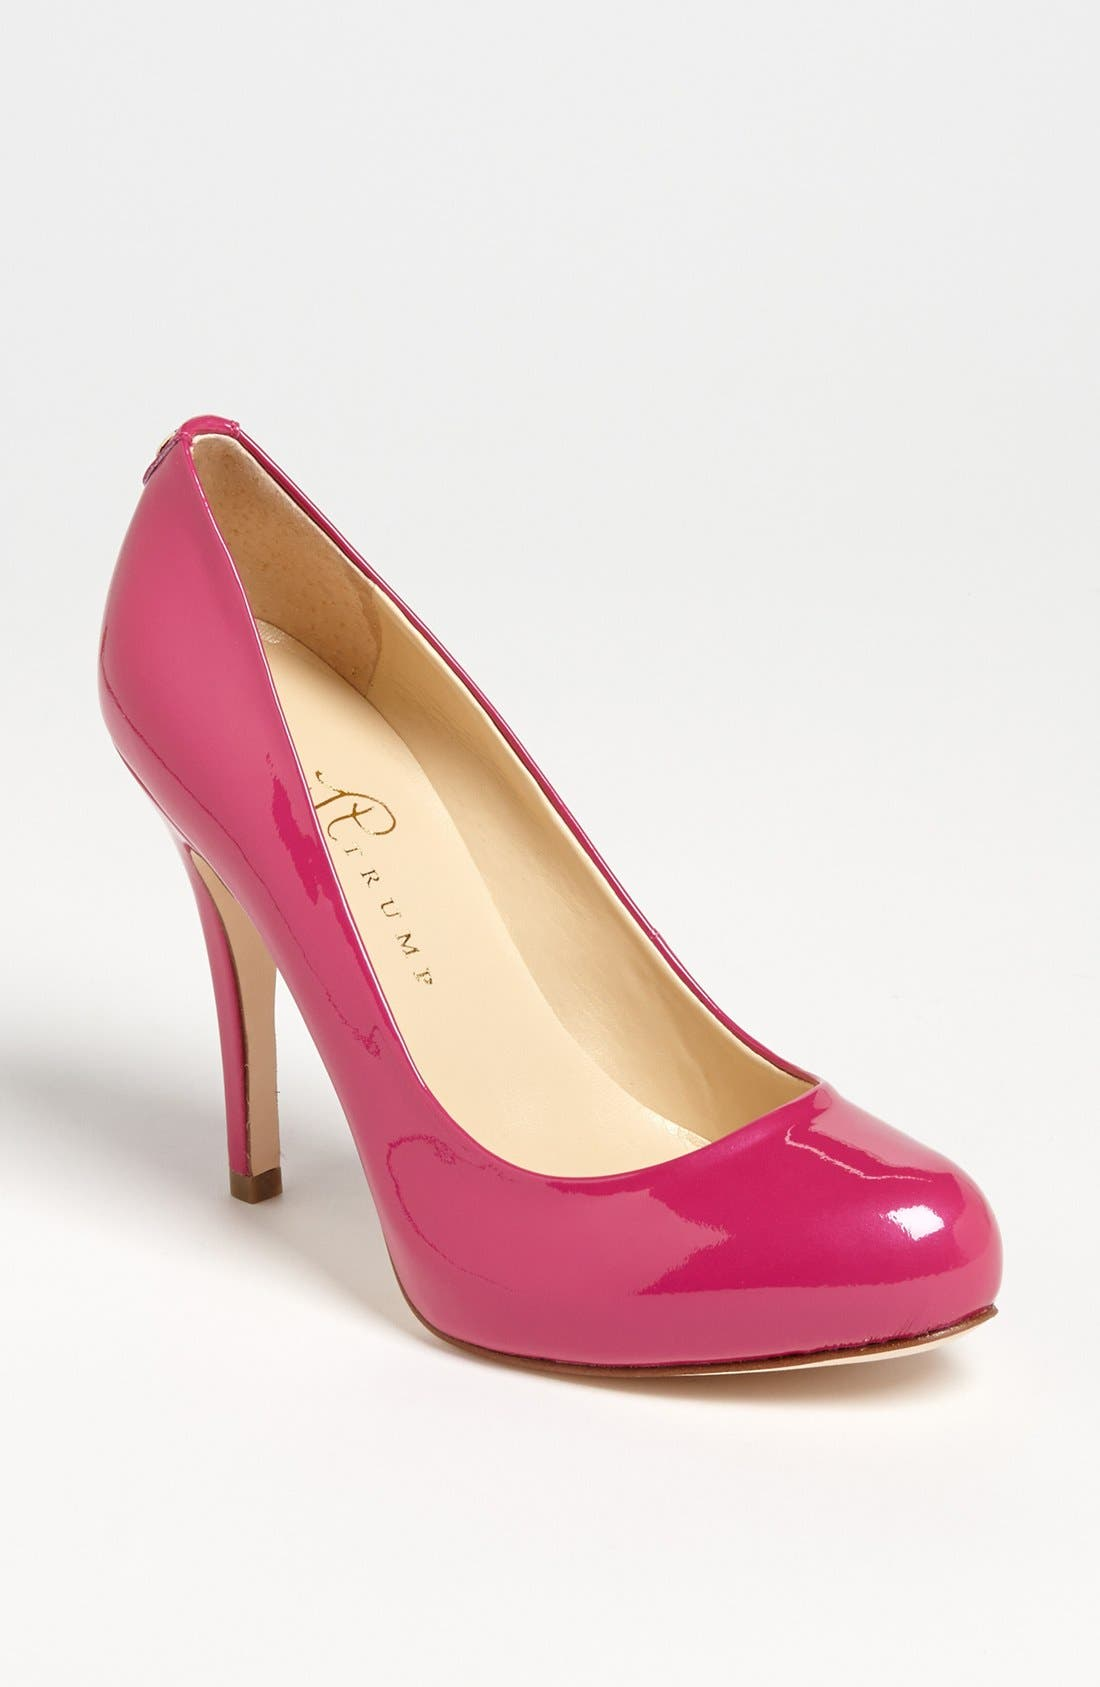 Main Image - Ivanka Trump 'Pinkish' Platform Pump